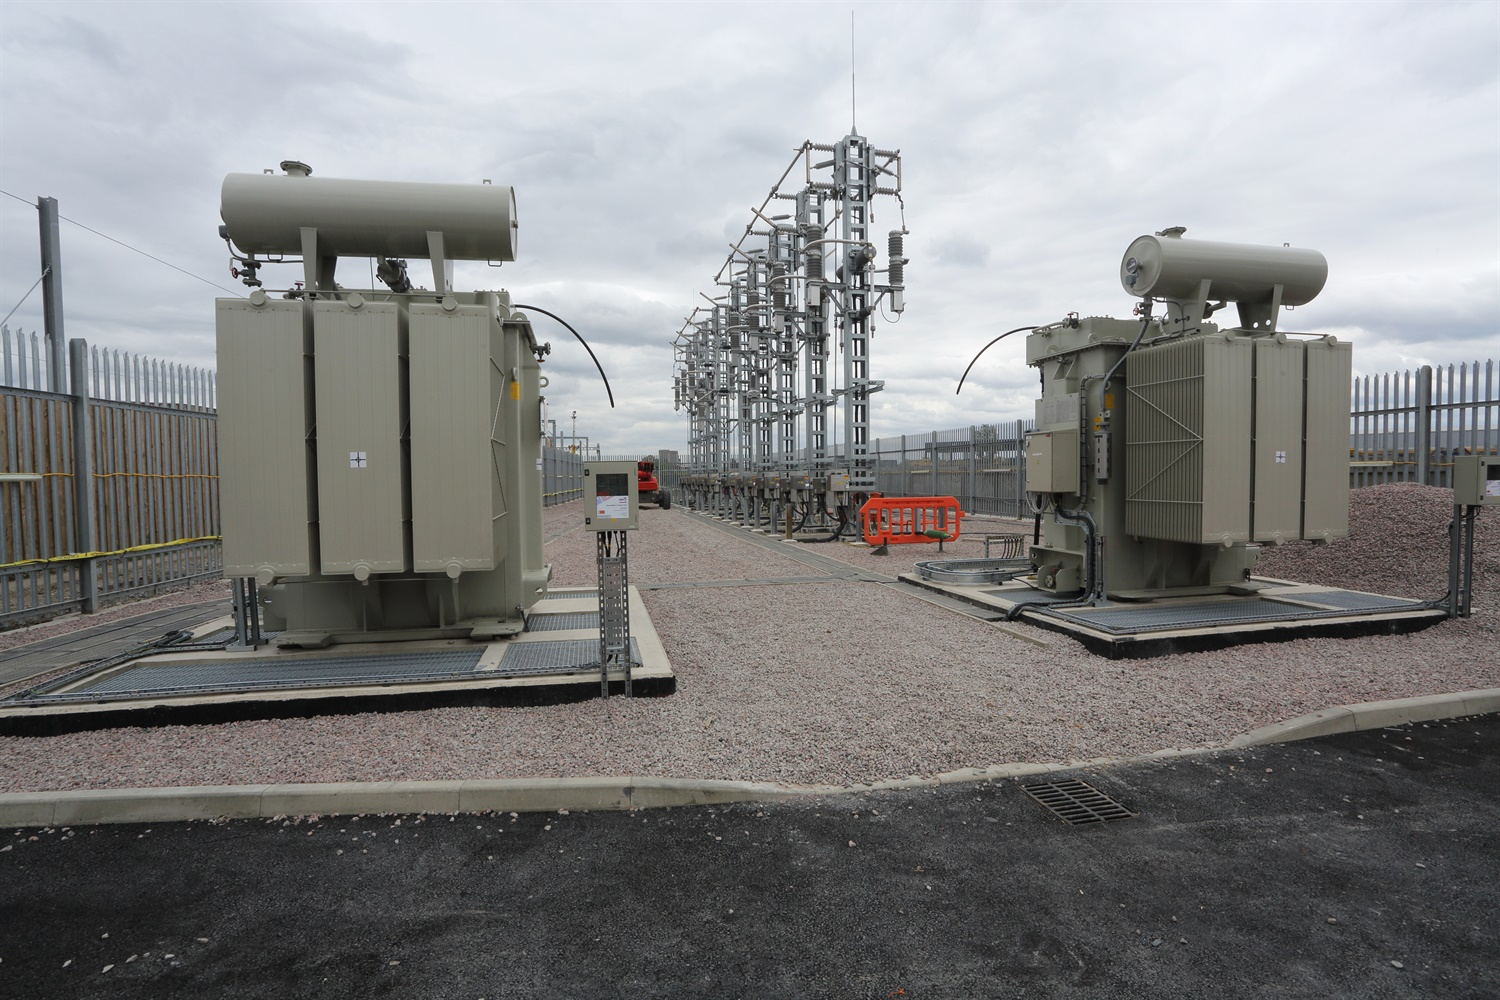 20 Auto-transformers and high voltage masts installed at Plumstead 270001